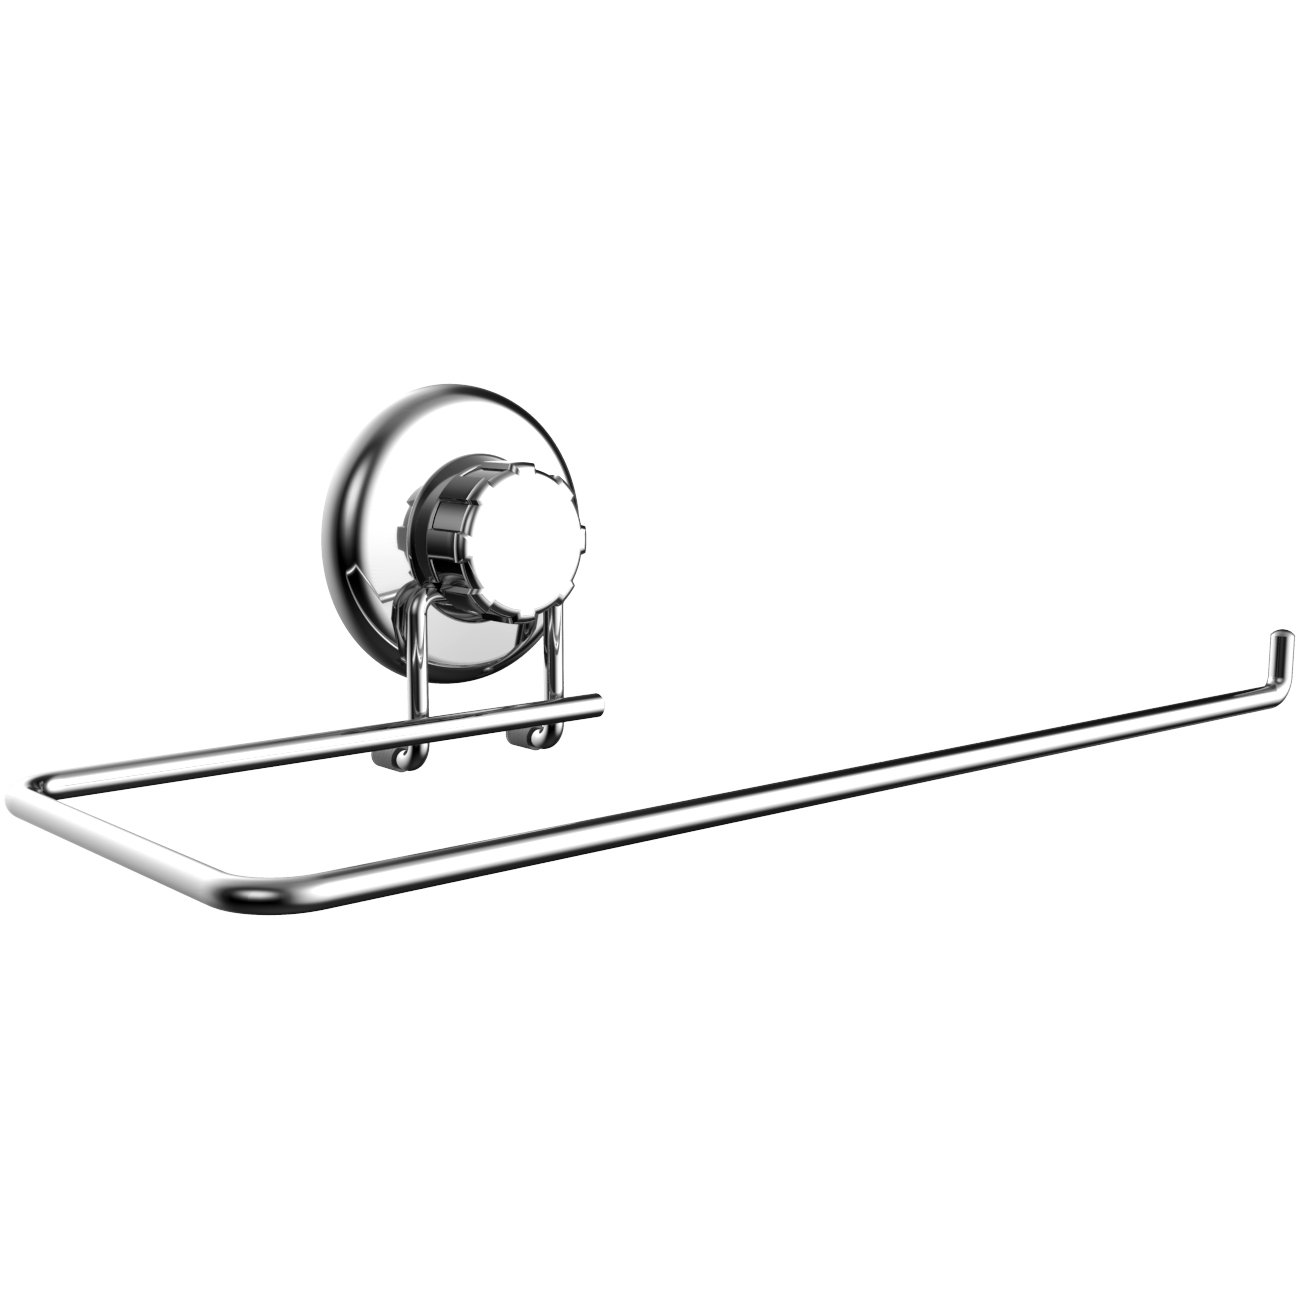 HASKO Accessories - Suction Cup Paper Towel Holder- Chrome Plated Stainless Steel Bar for Bathroom & Kitchen (Chrome)